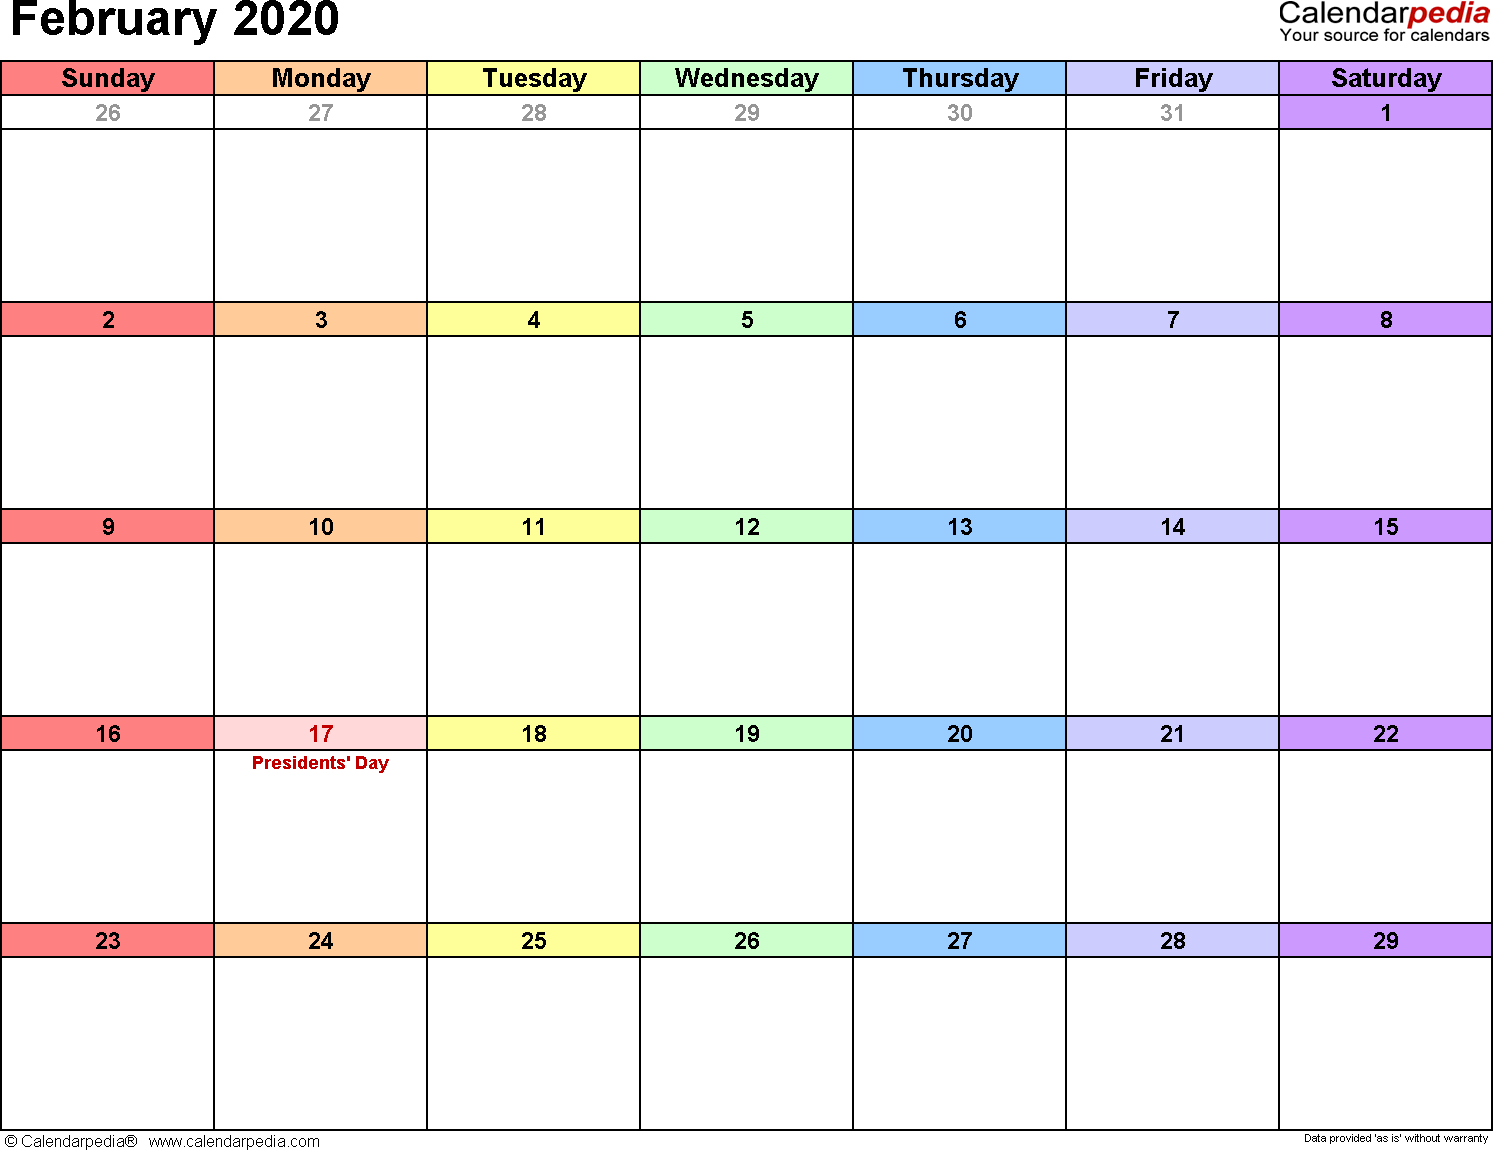 February 2020 Calendars For Word, Excel & Pdf